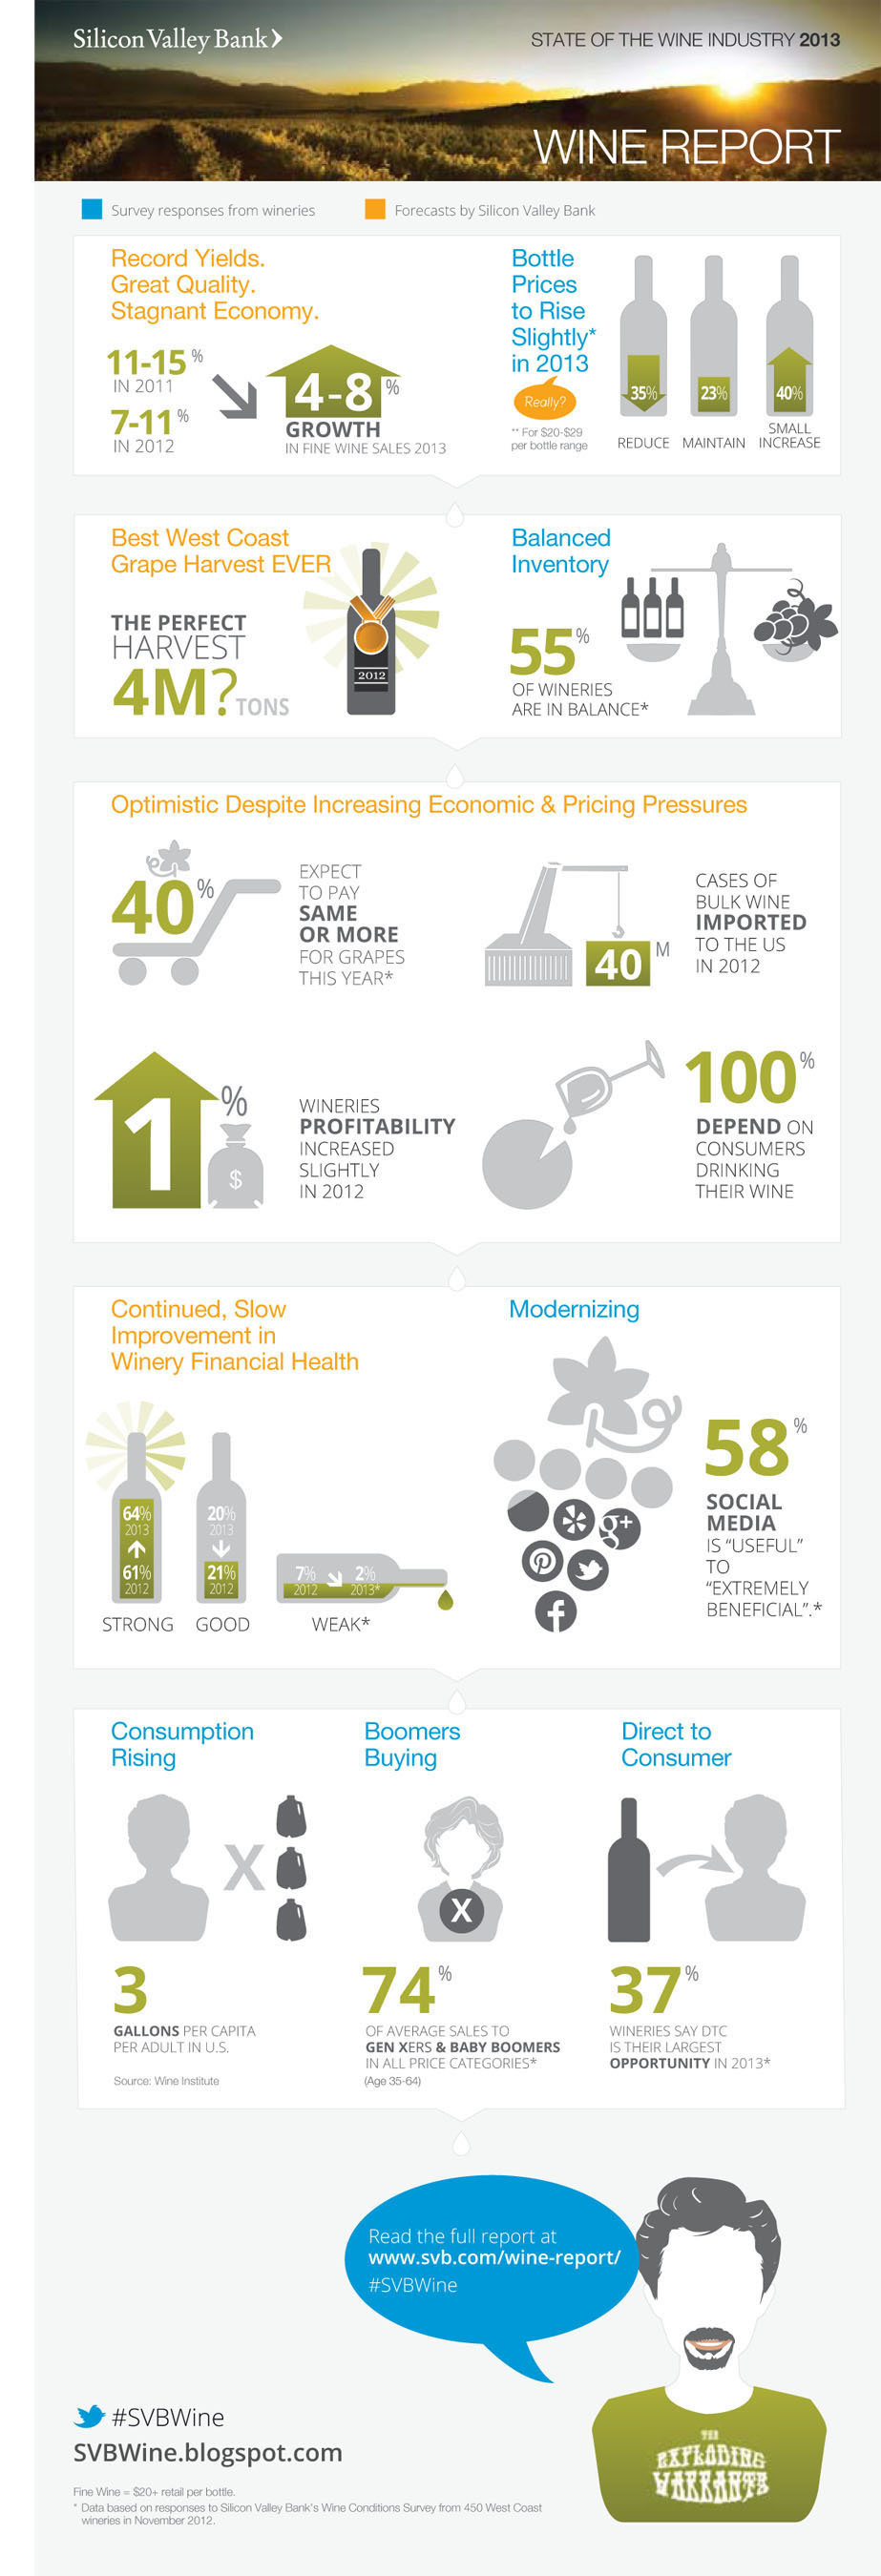 Silicon Valley Bank's Annual State of the Wine Report infographic.  (PRNewsFoto/Silicon Valley Bank)